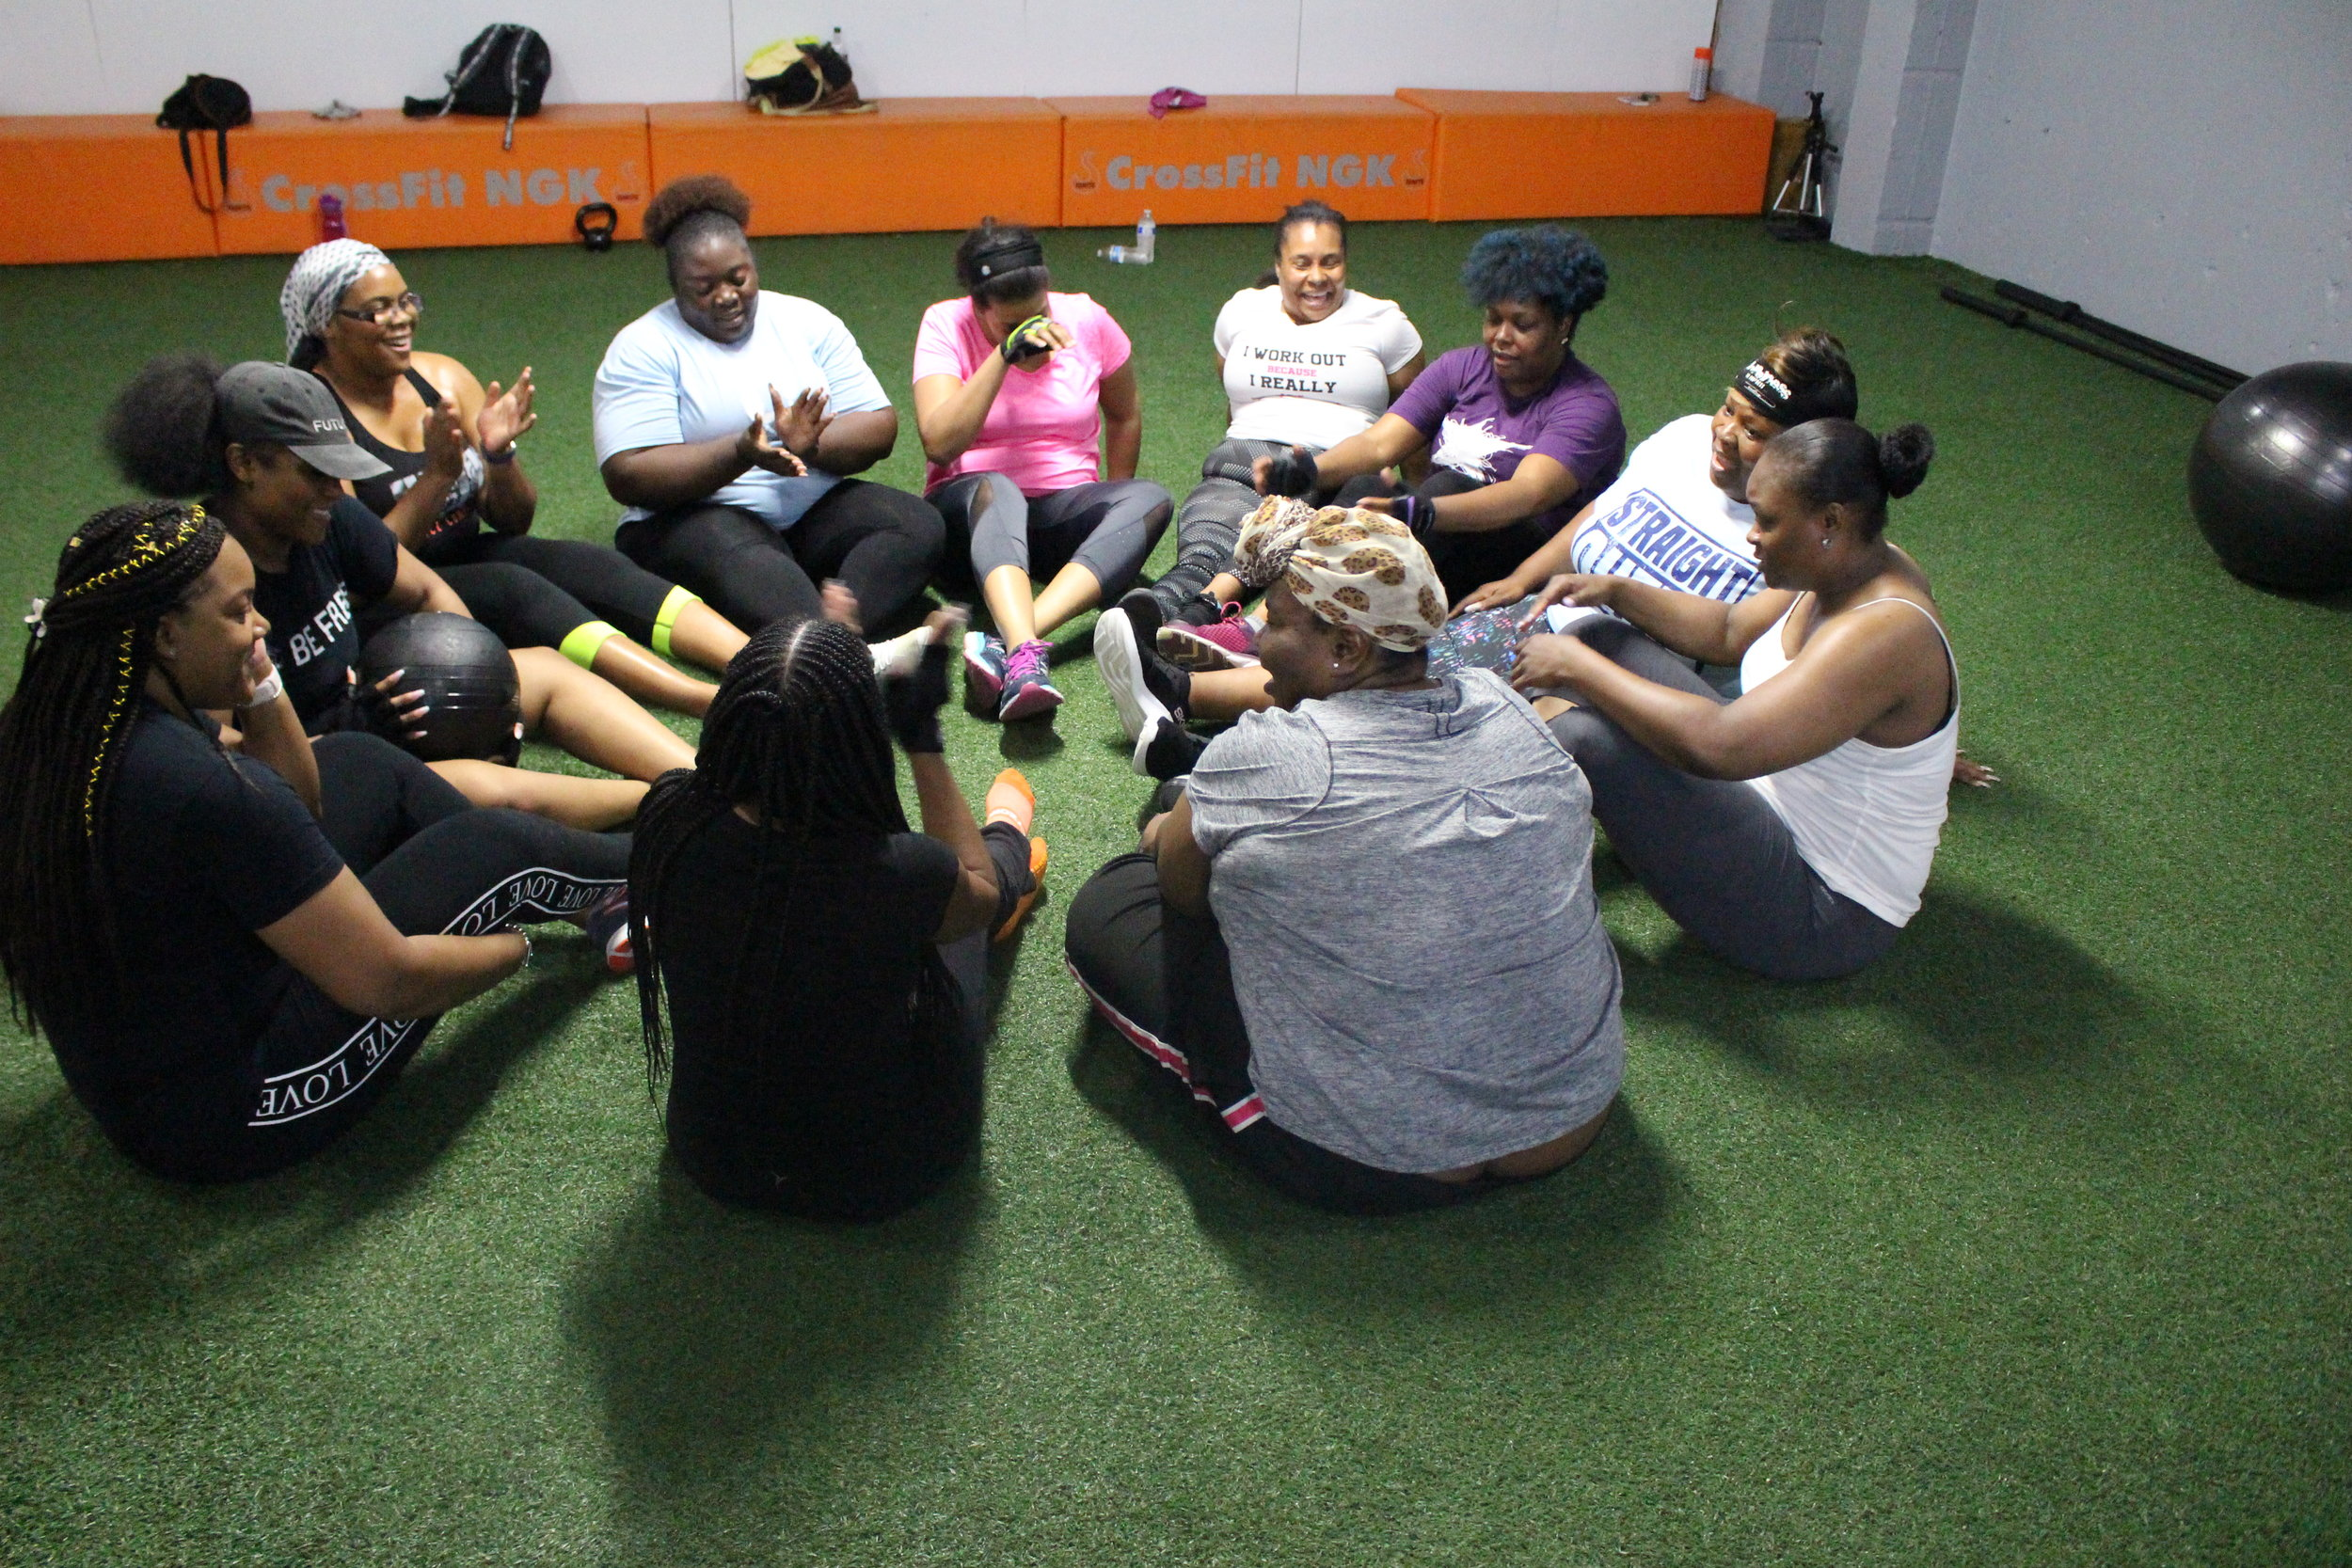 Small Group Training - Group sessions are fun and allow you to compete against other participants and motivate each other while still getting individual attention to help your goals.